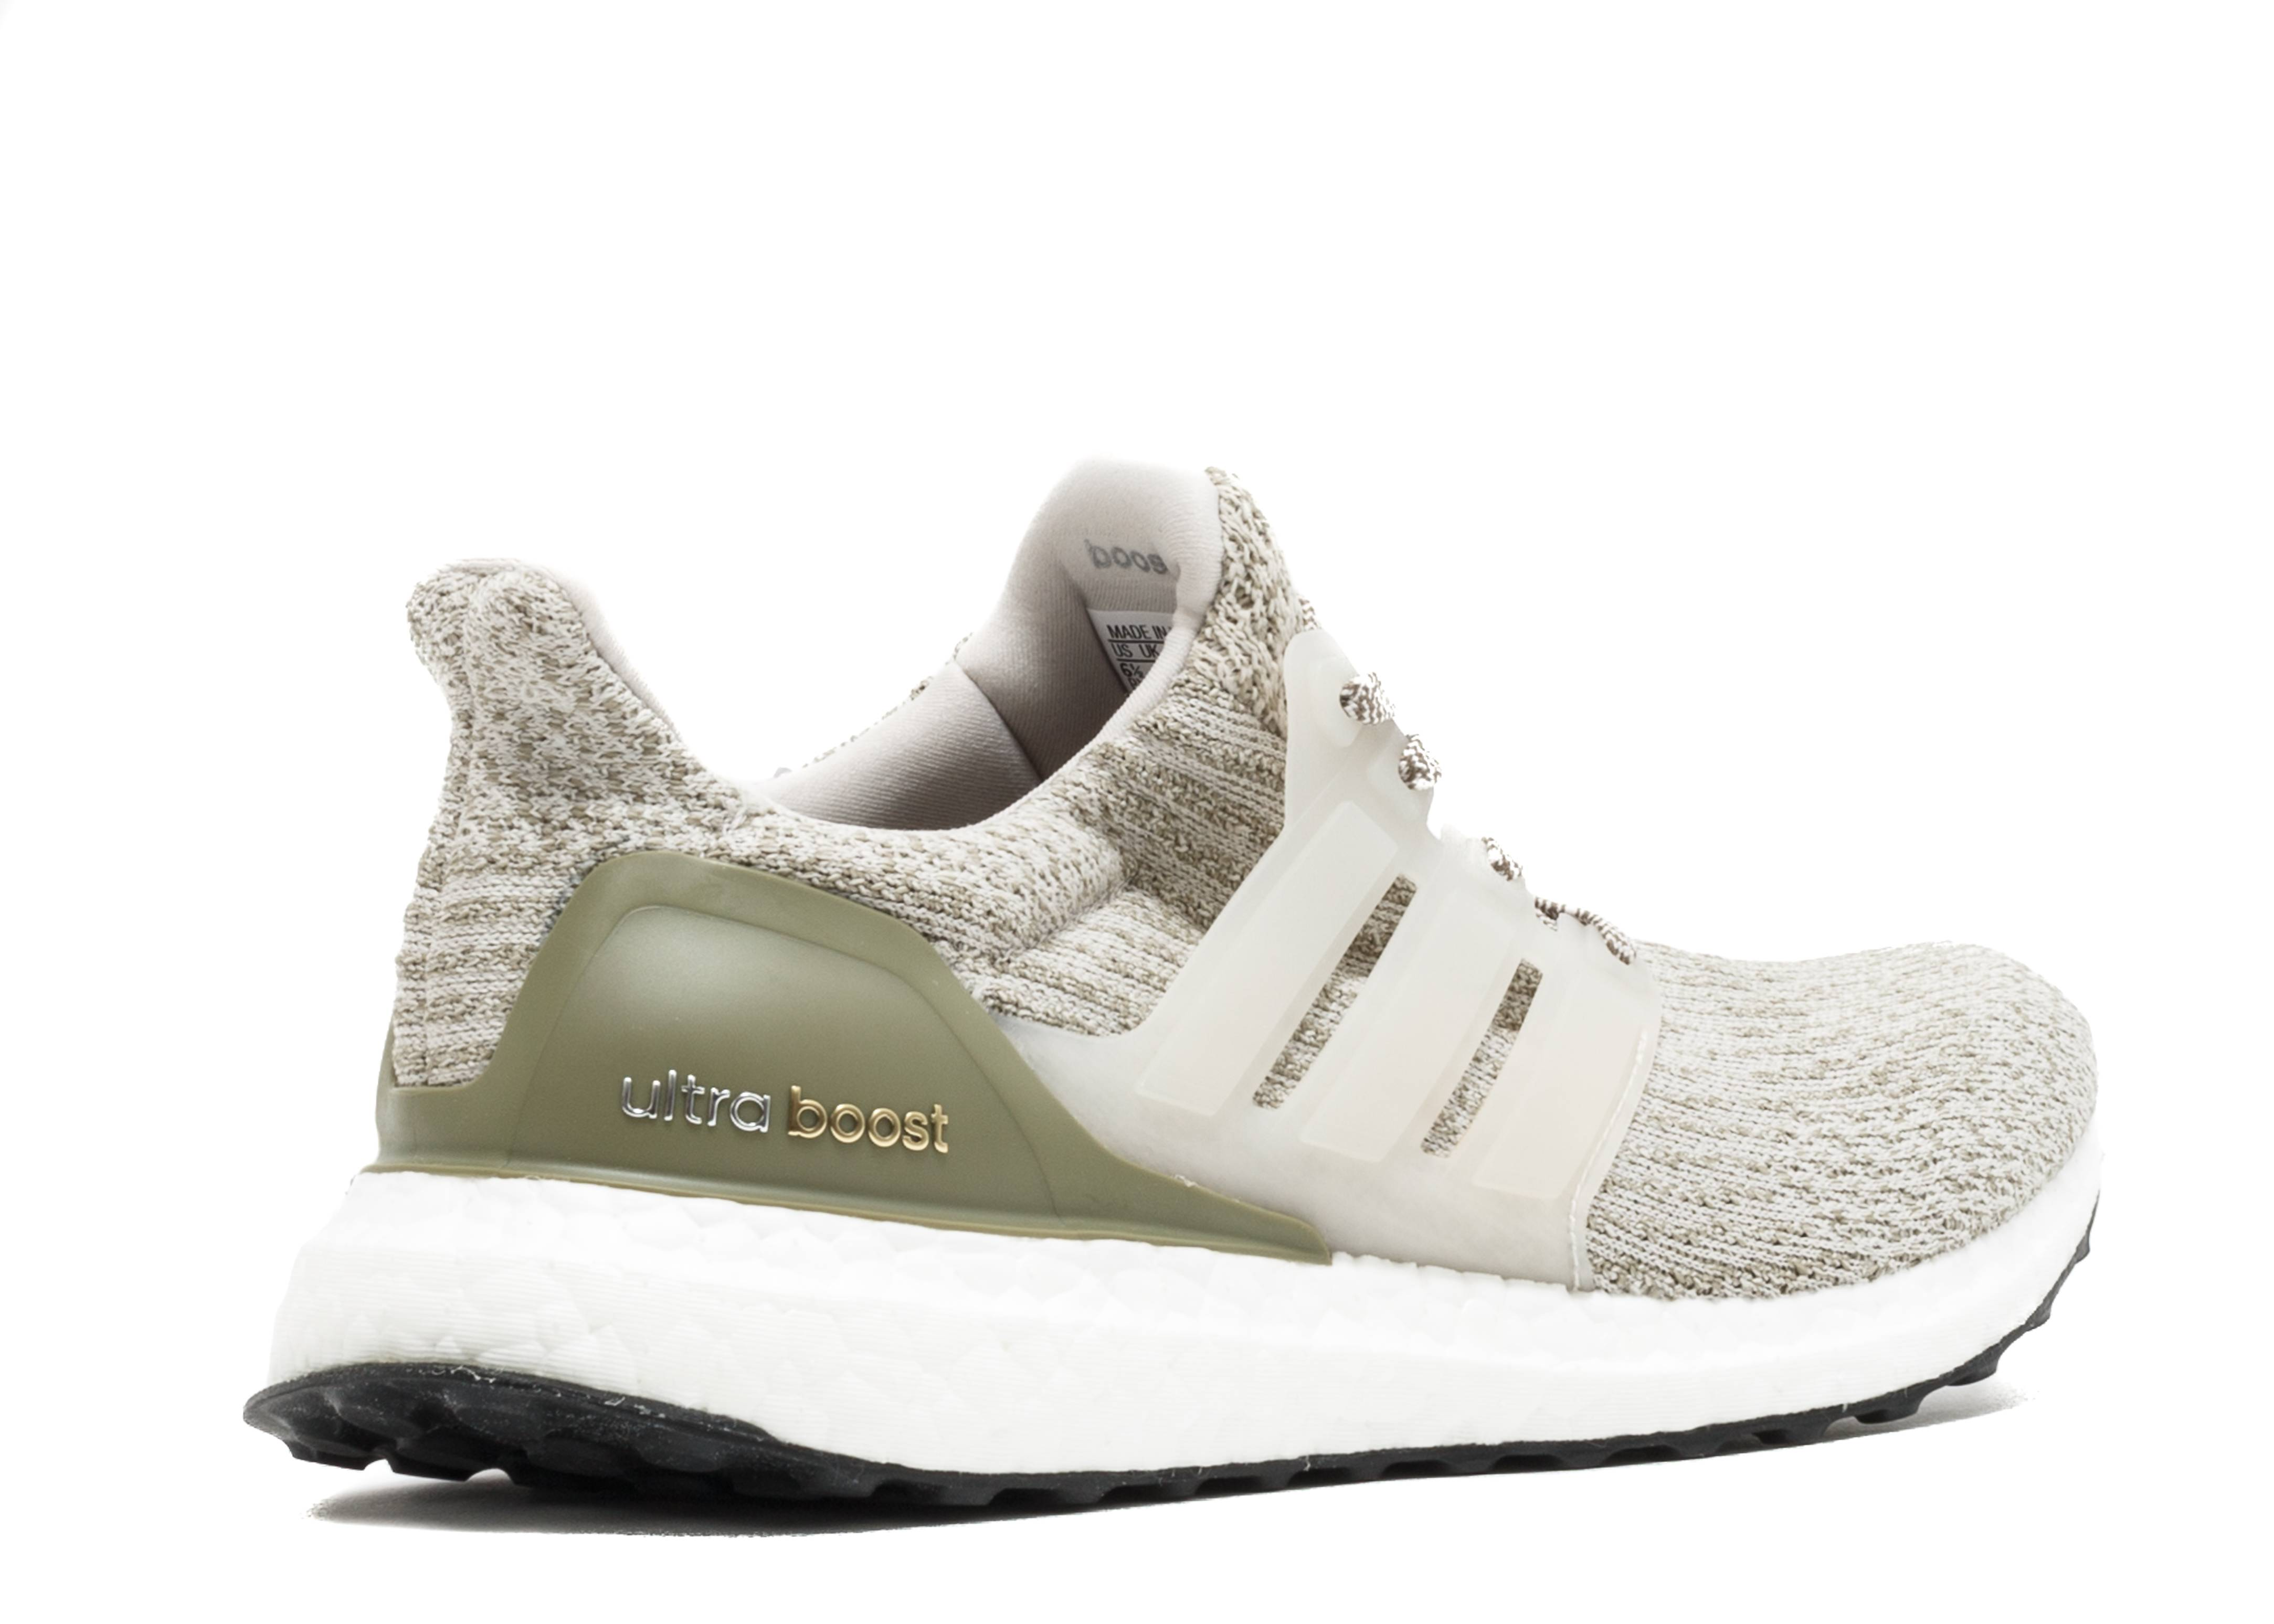 311445c0fc6 Adidas Ultra Boost 3.0 Olive Copper - 3